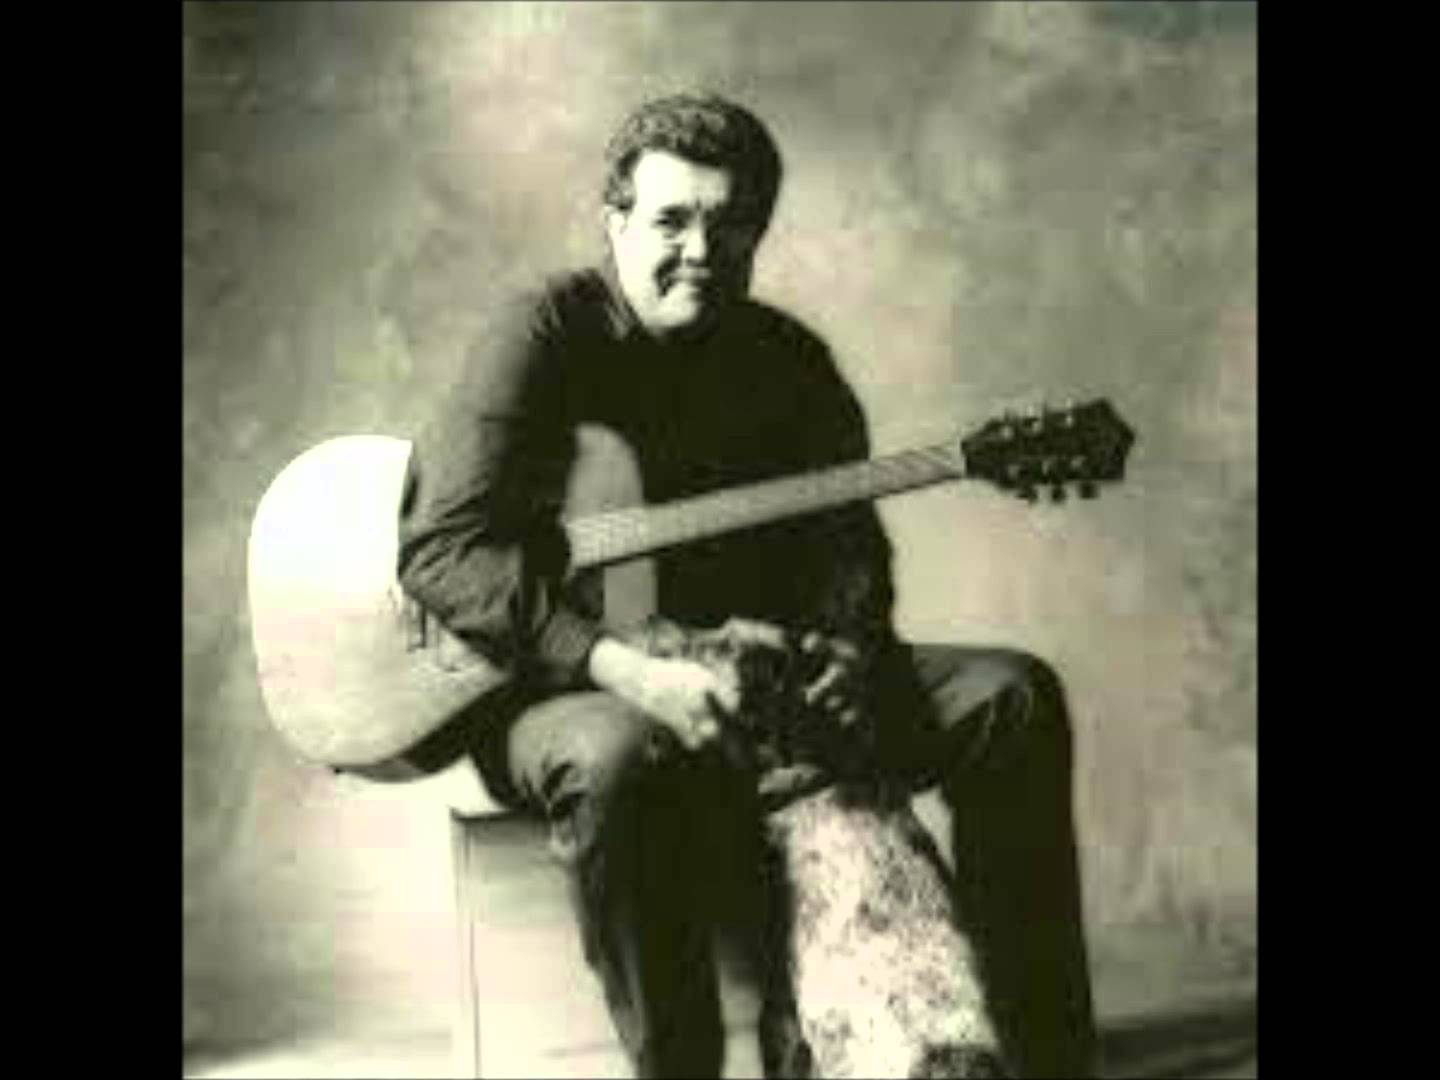 James Talley – East Texas Red [Woody Guthrie]